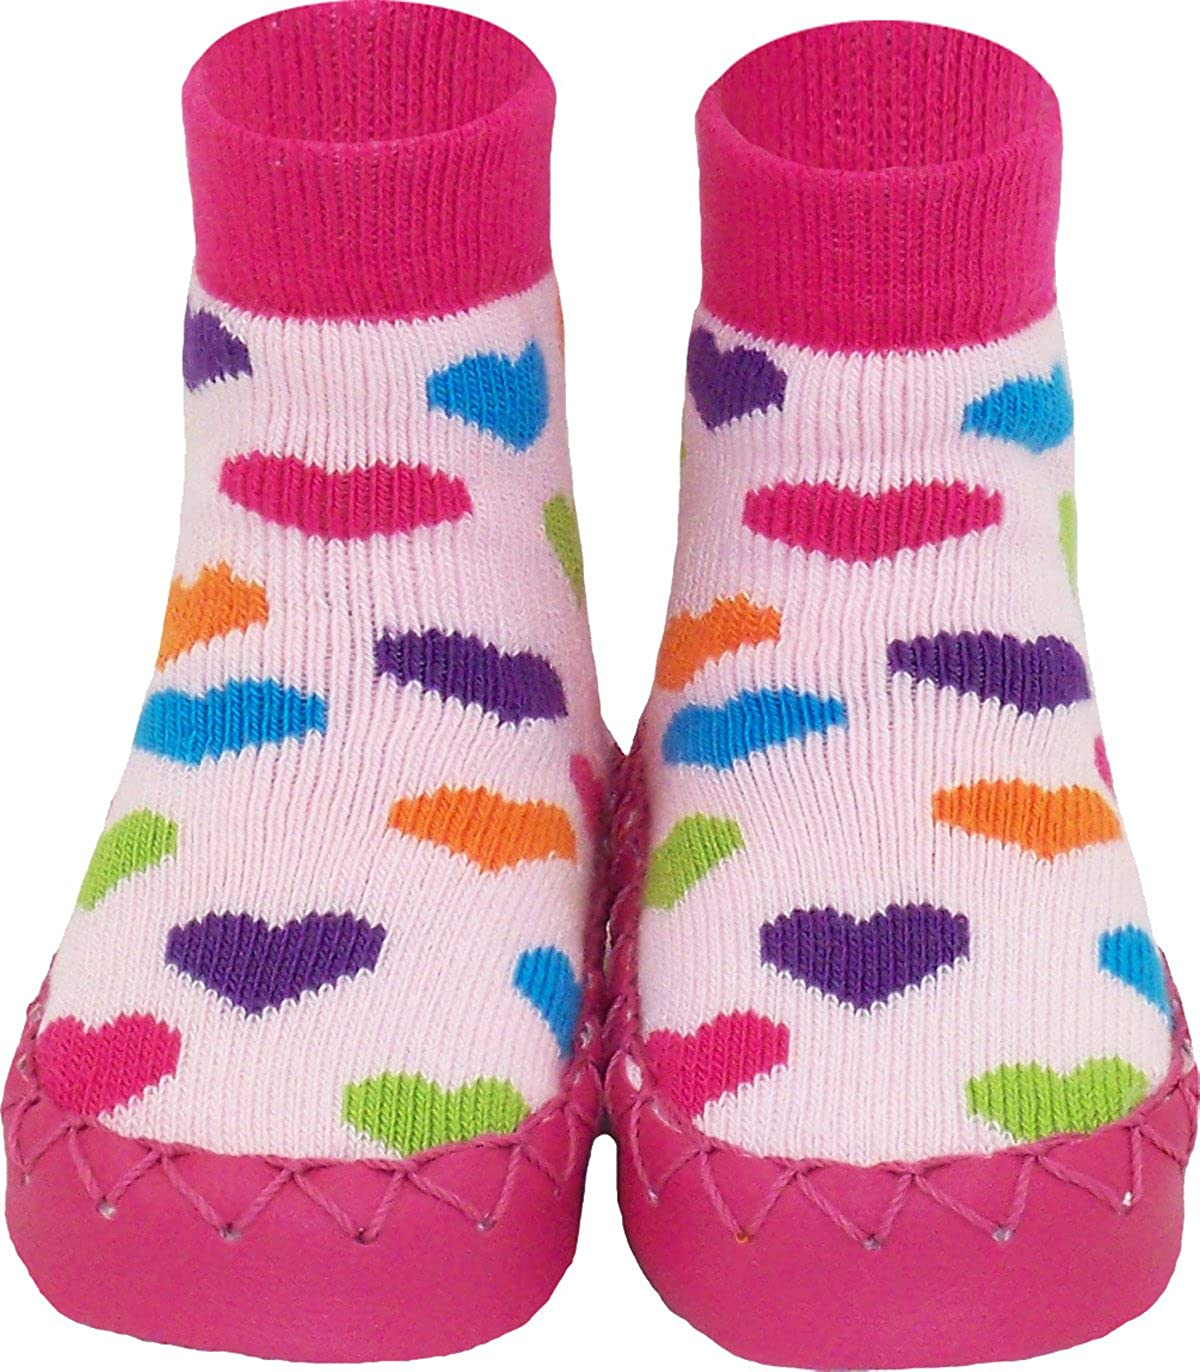 Konfetti Sweet Hearts Kids Swedish Moccasins House Slippers Shoes Girls Slipper Socks Home Footwear for Toddlers Pre-Schoolers and Children